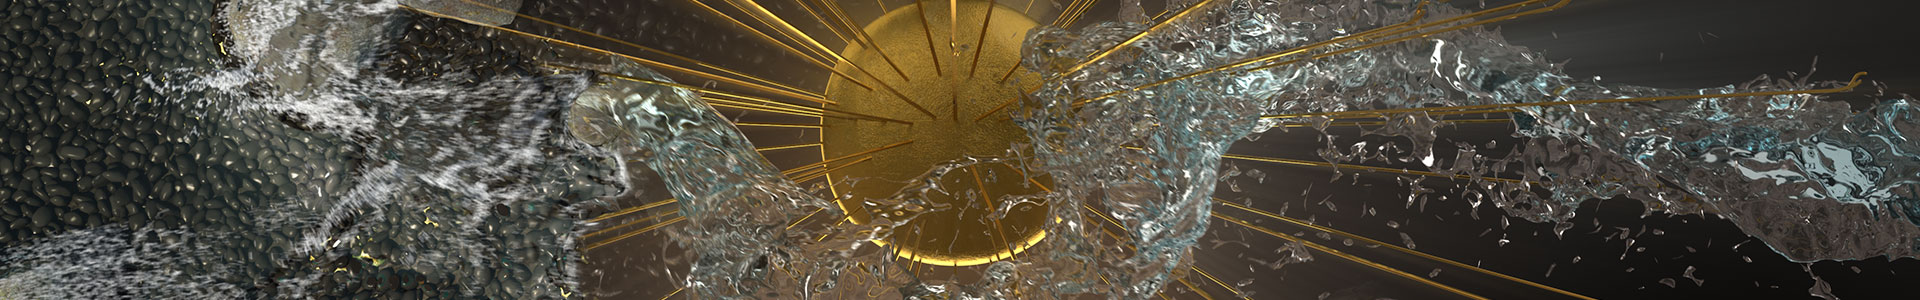 Wonder of Gold - Abstract Fluid Simulation Sequence